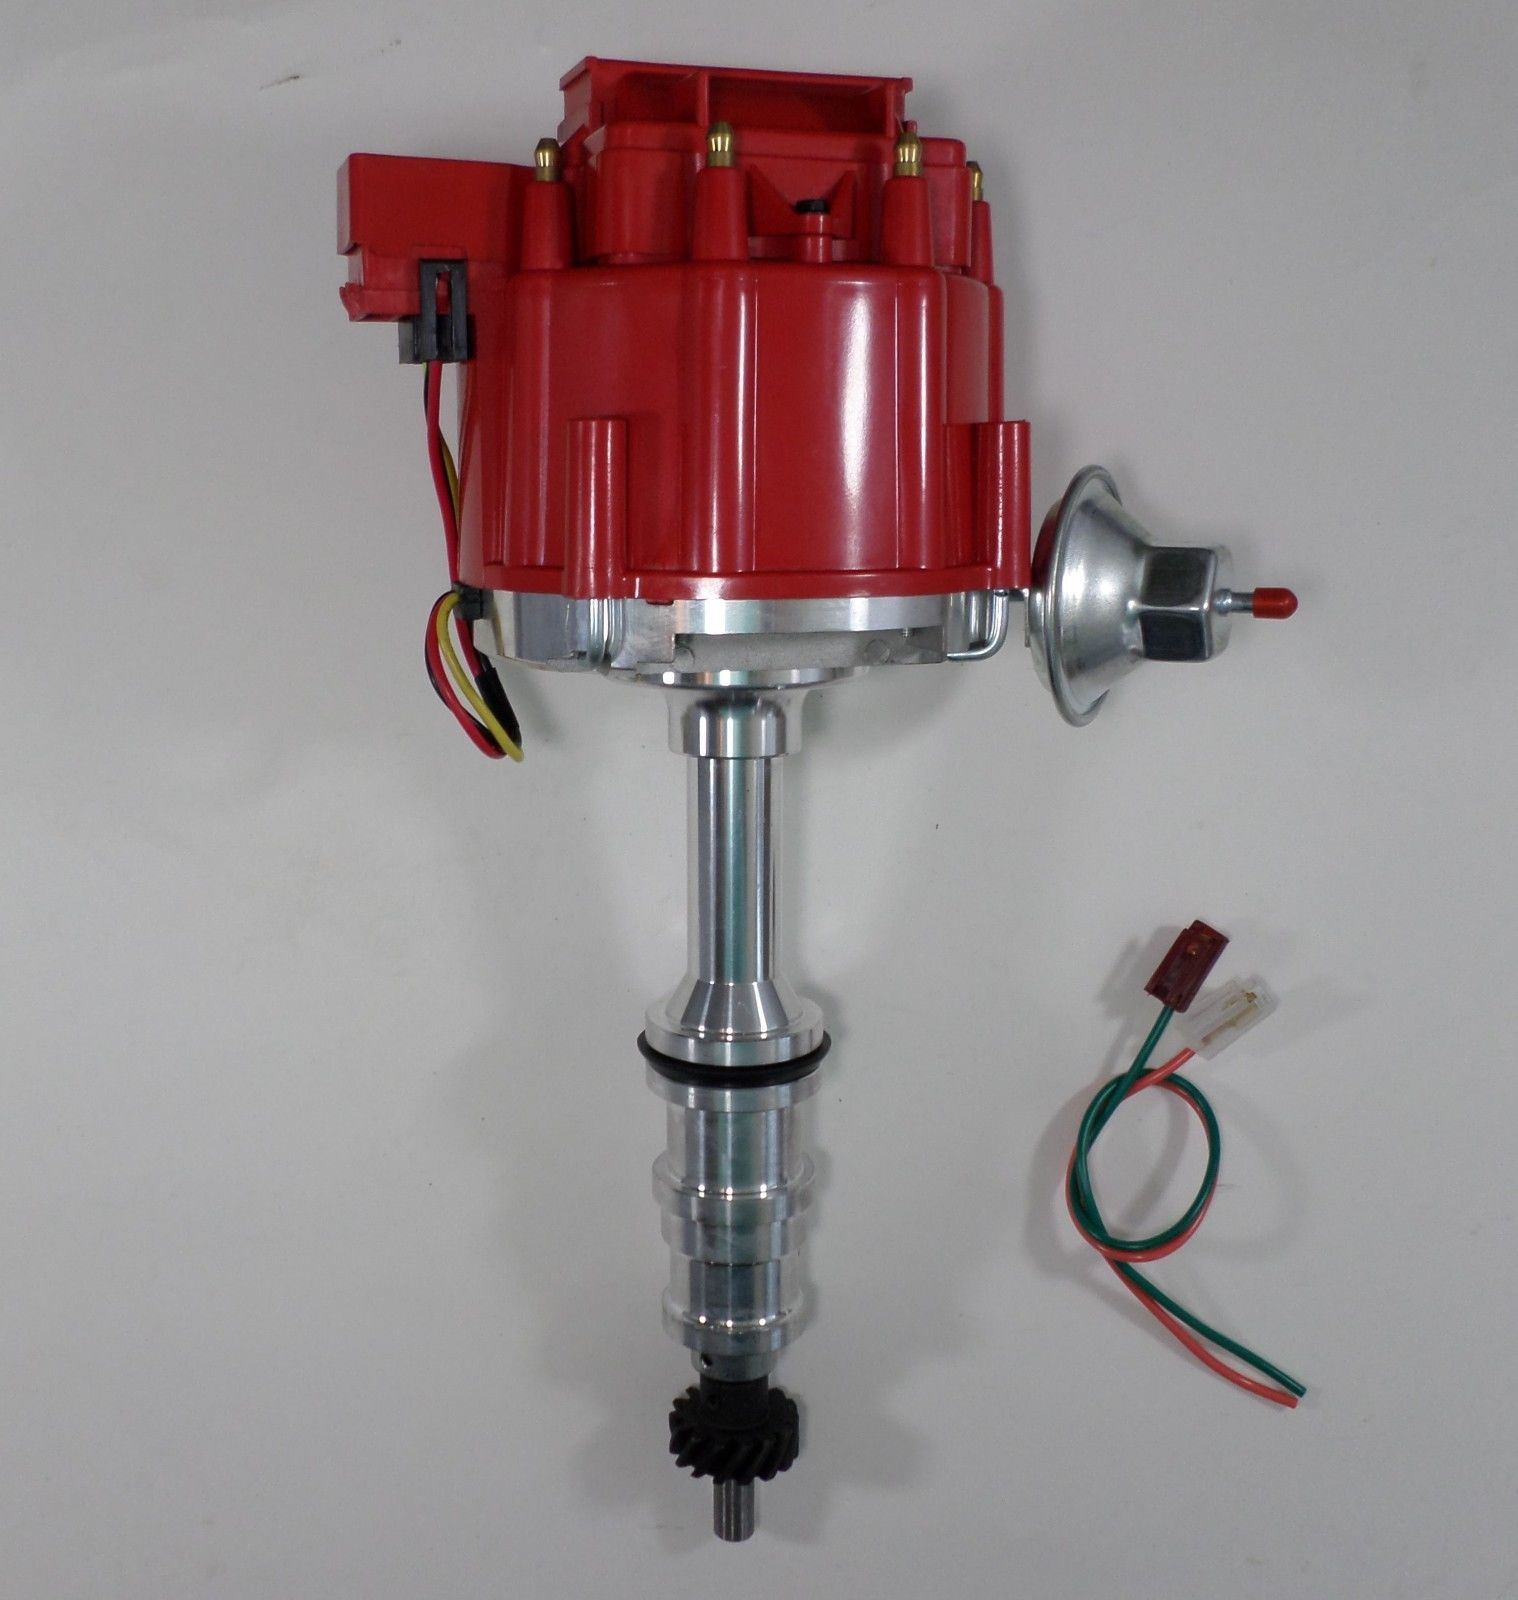 FORD FE RED HEI Distributor 332,352,360,390,406,410,427,428 w/65,000 VOLT  COIL